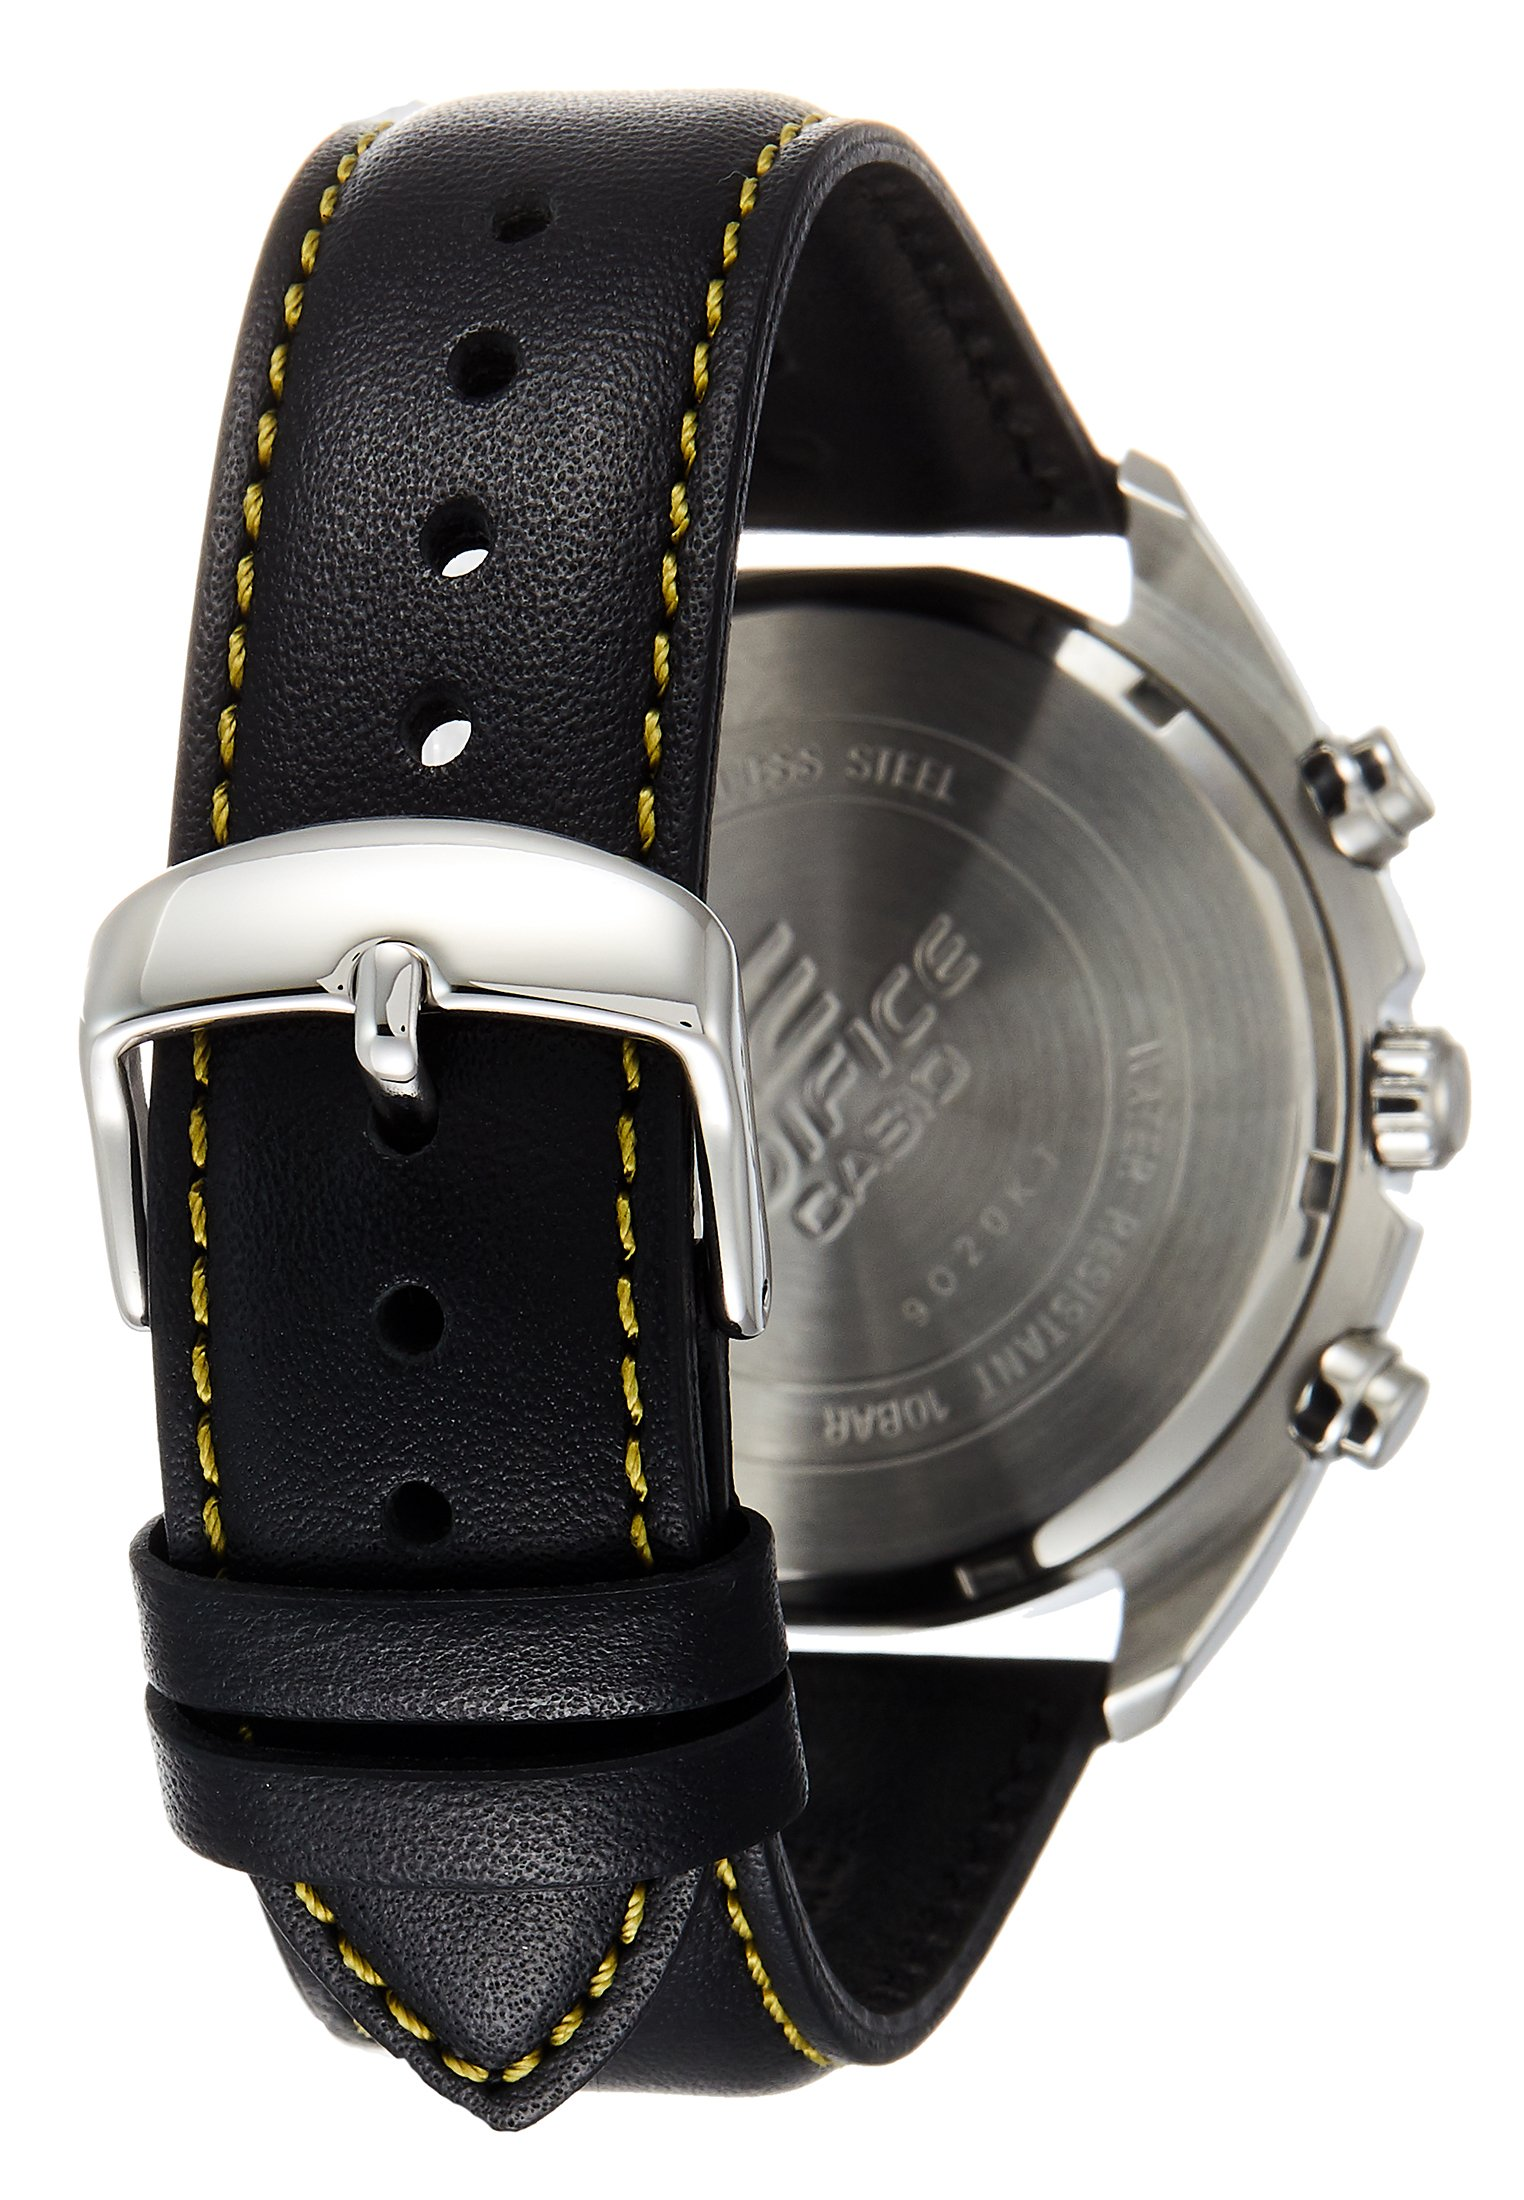 2013 Outlet EDIFICE Chronograph watch - black | men's accessories 2020 5bBpy